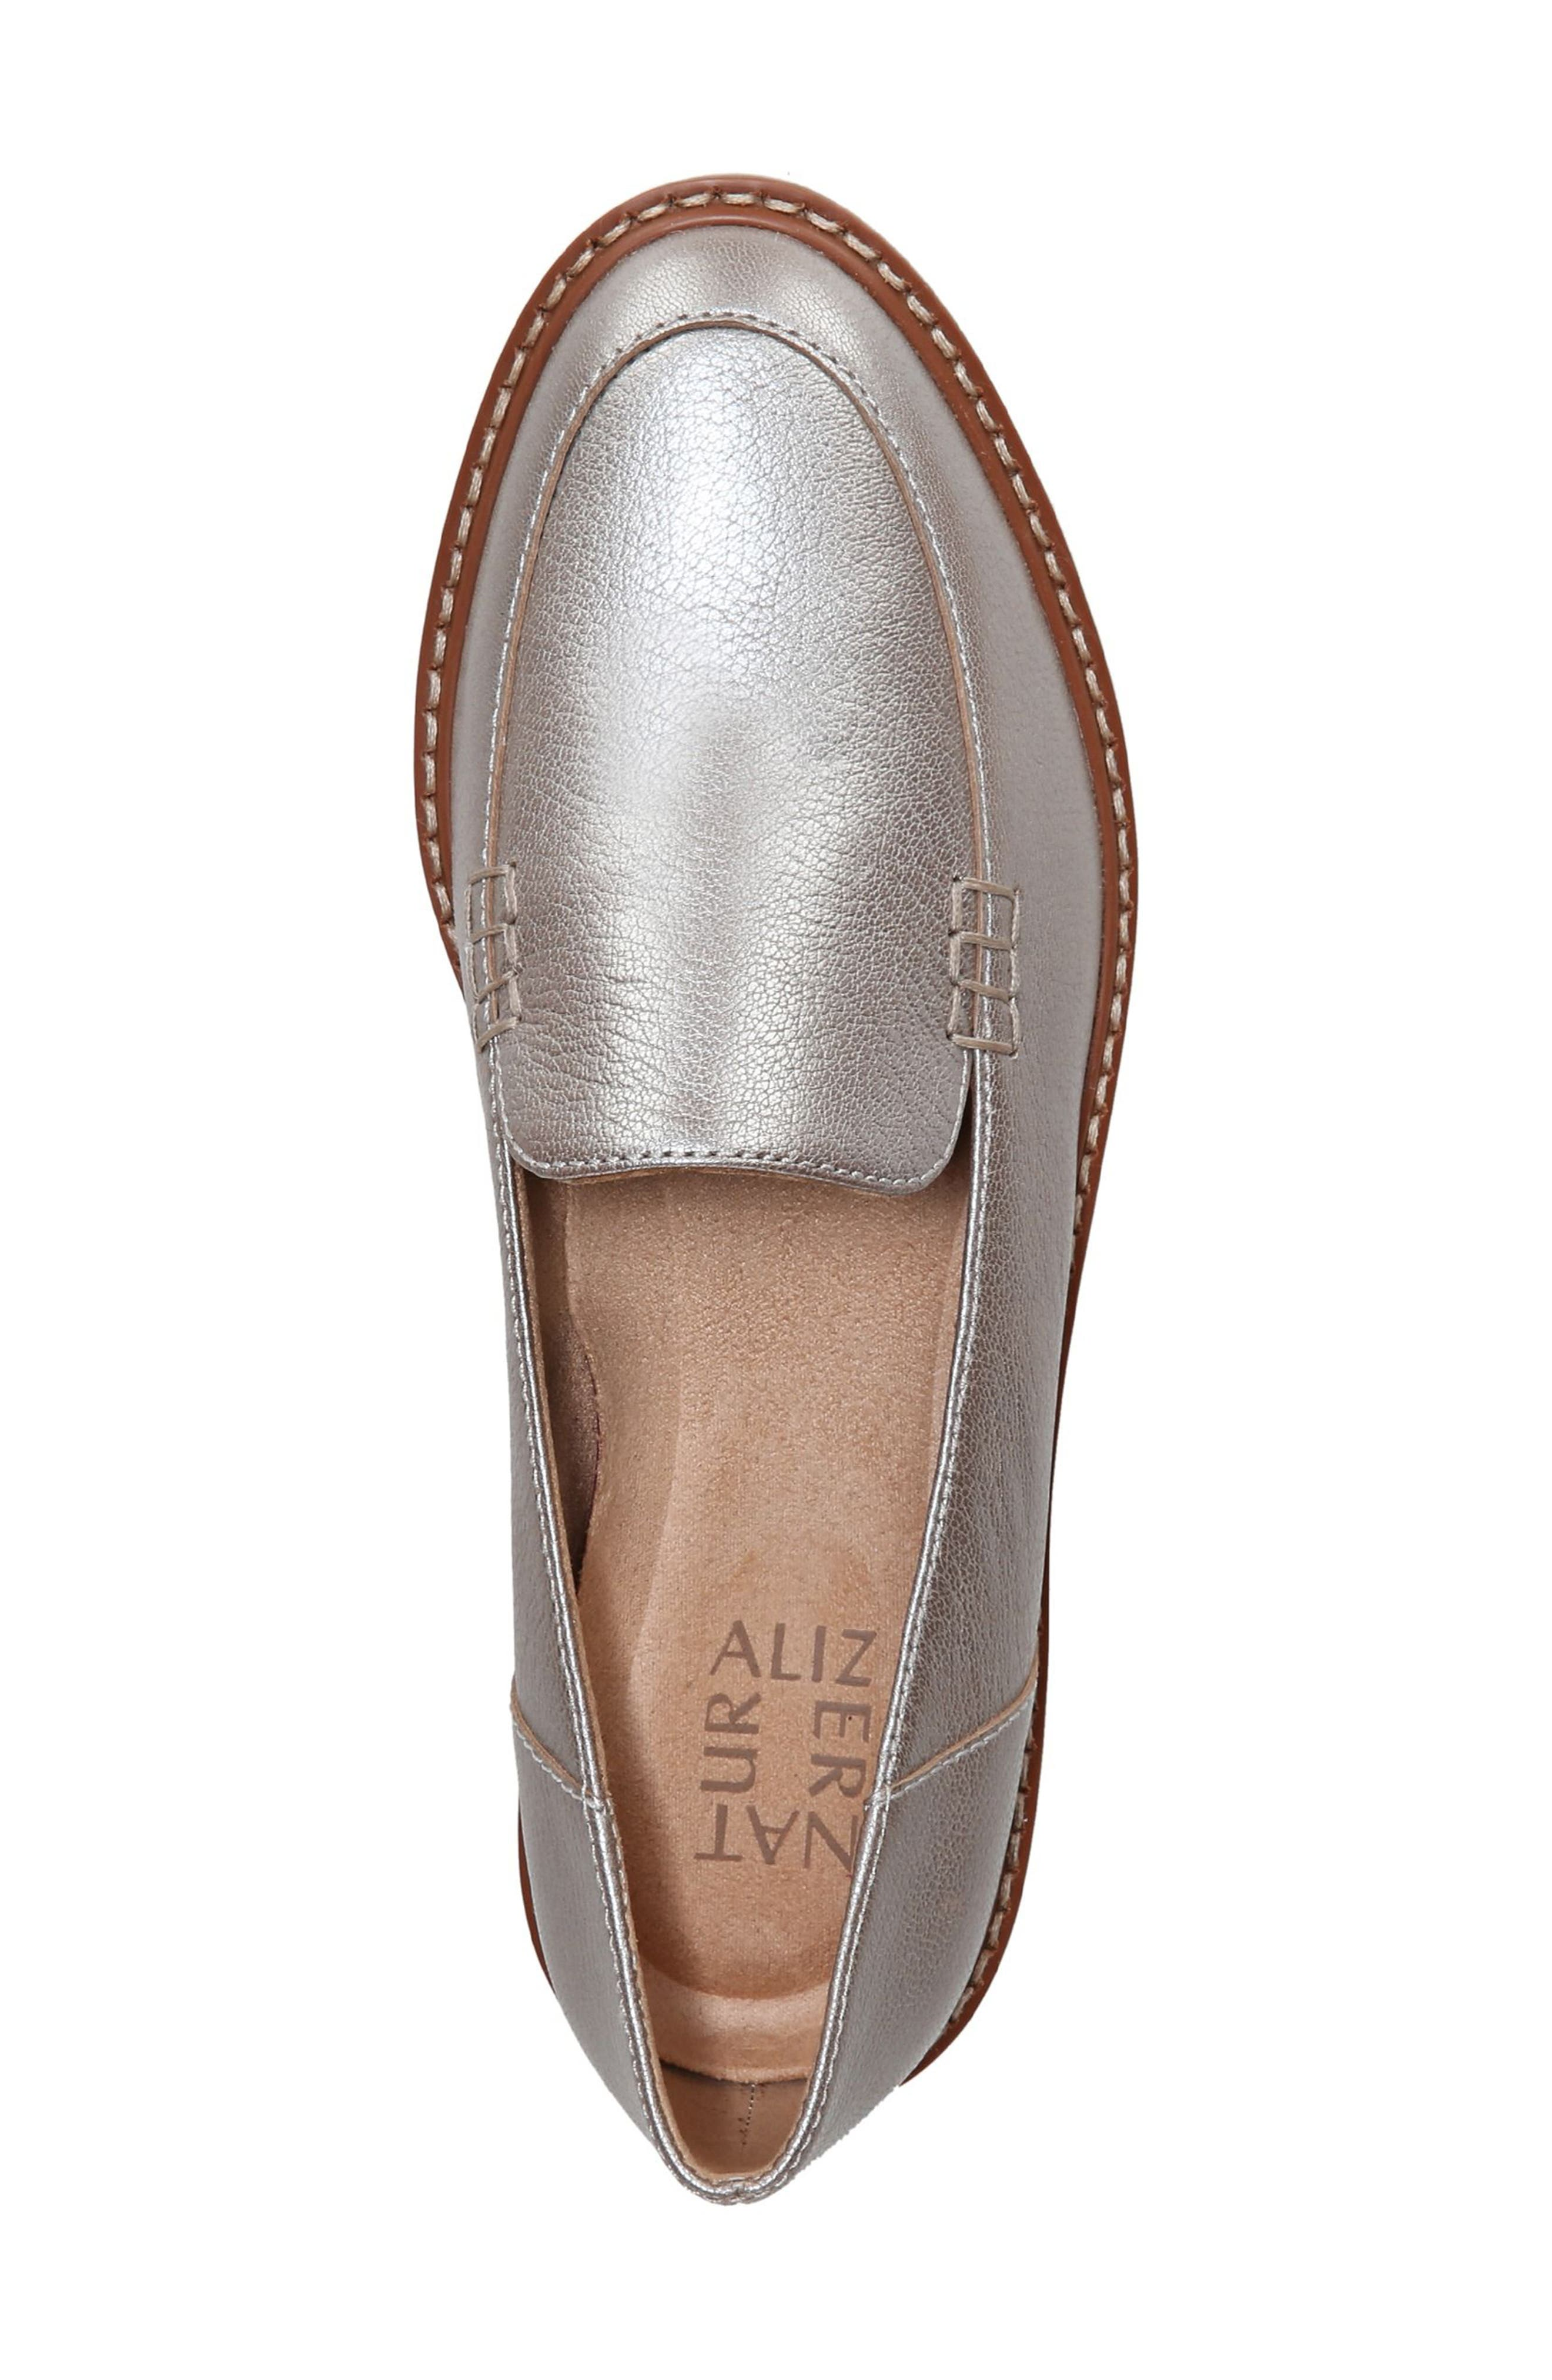 Andie Loafer,                             Alternate thumbnail 5, color,                             Silver Leather